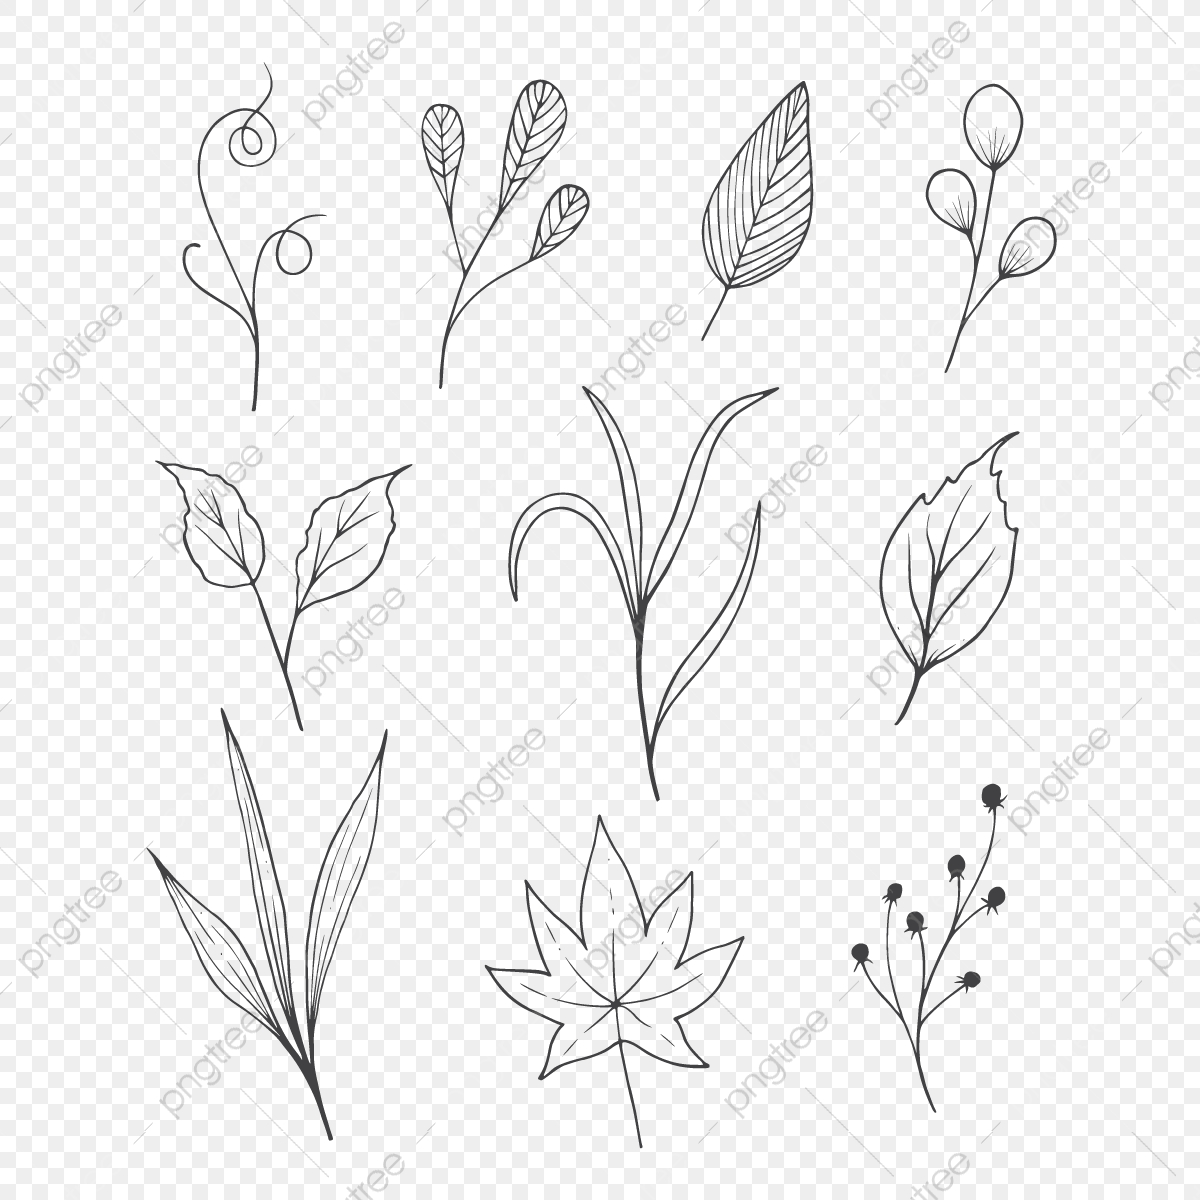 Flower Sketch Png Images Vector And Psd Files Free Download On Pngtree